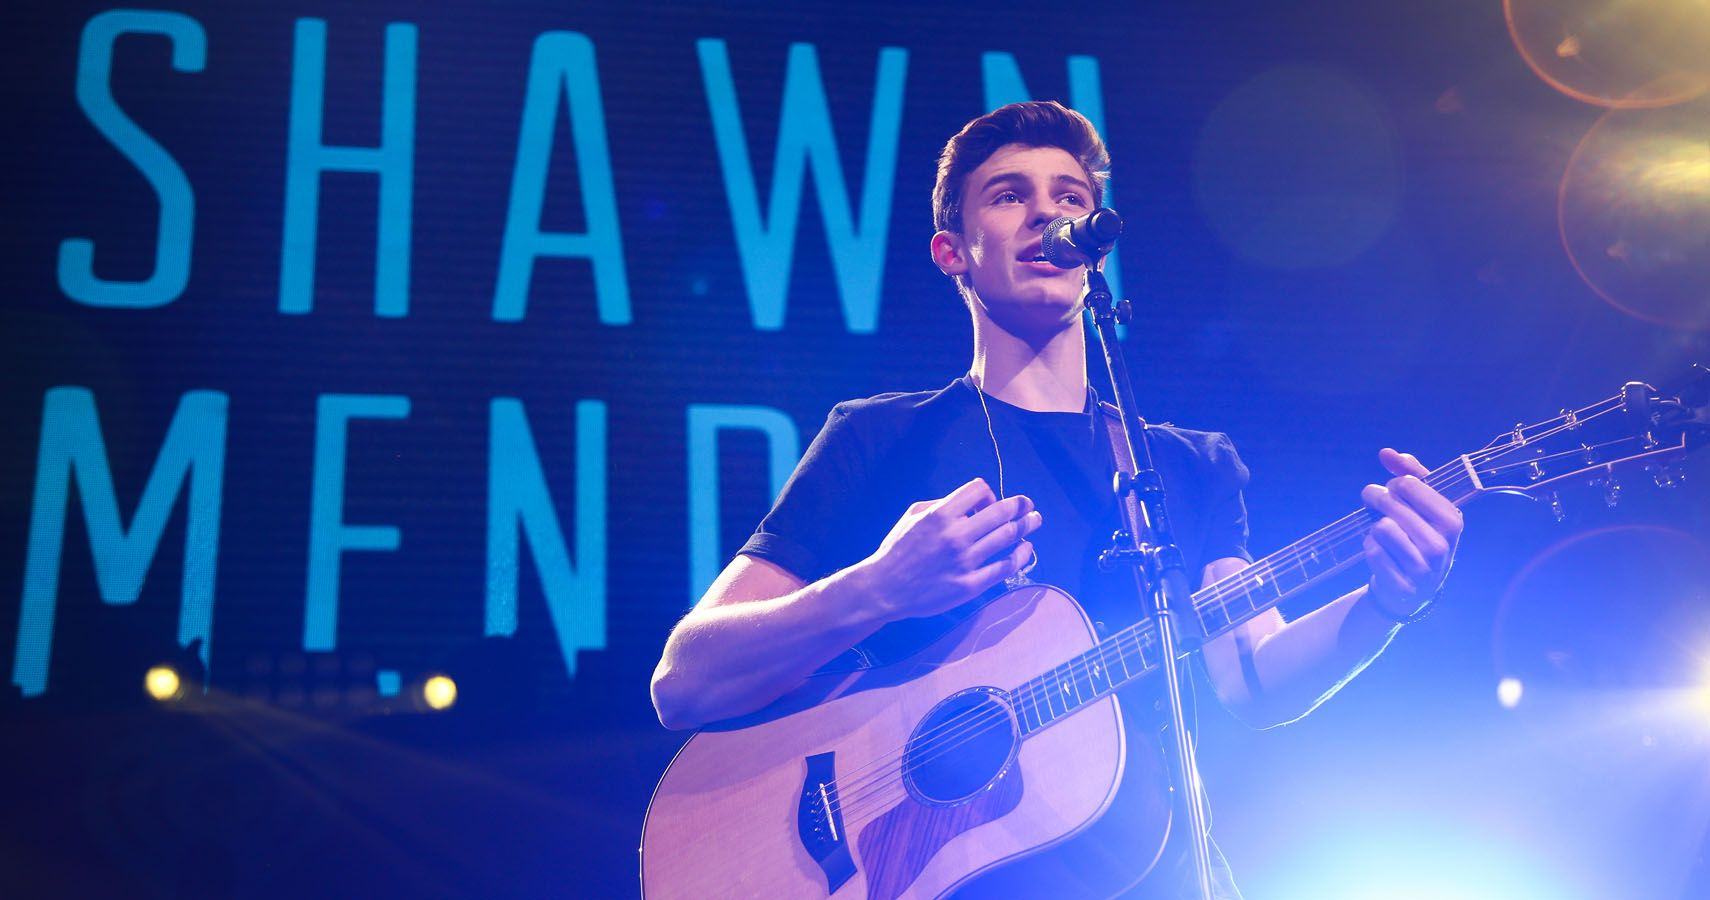 How Shawn Mendes Climbed The Vine To Fame & Fortune - TheRichest